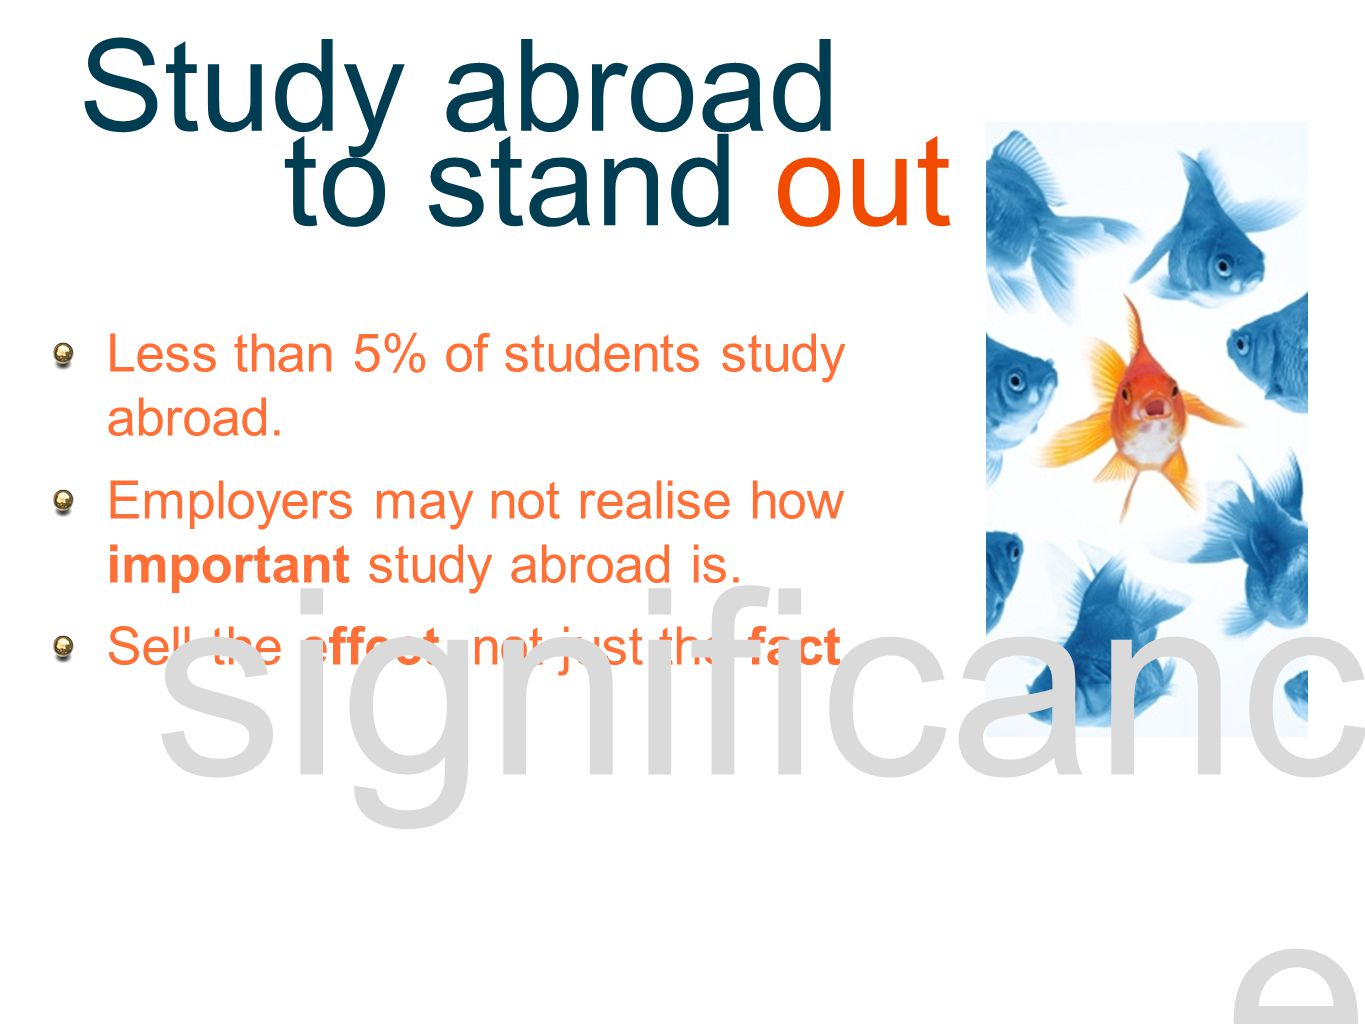 significance -stand out Less than 5% of students study abroad.